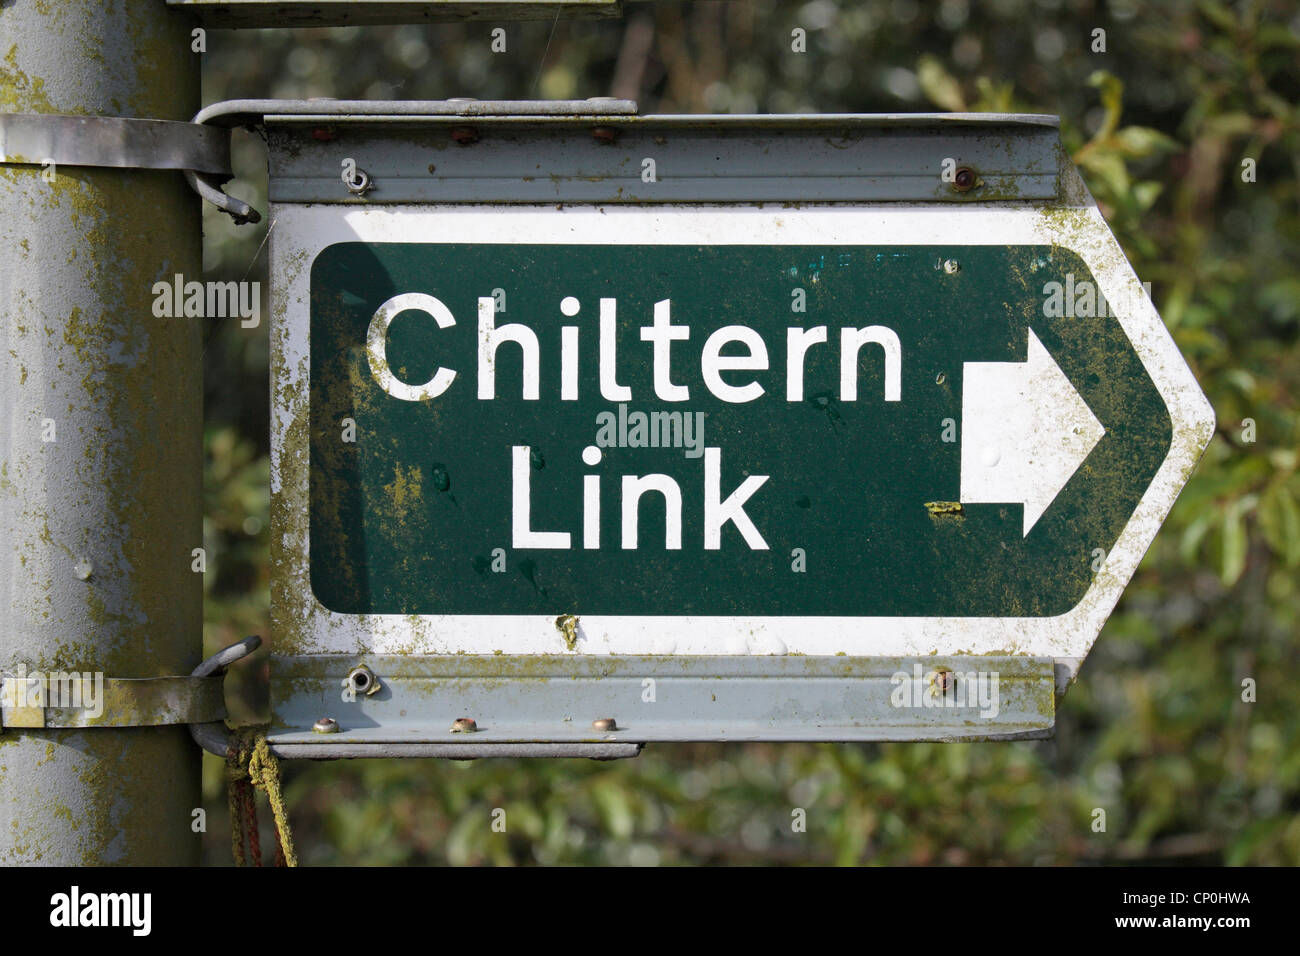 Sign showing the Chiltern Link footpath, near Wendover, Buckinghamshire, UK. - Stock Image